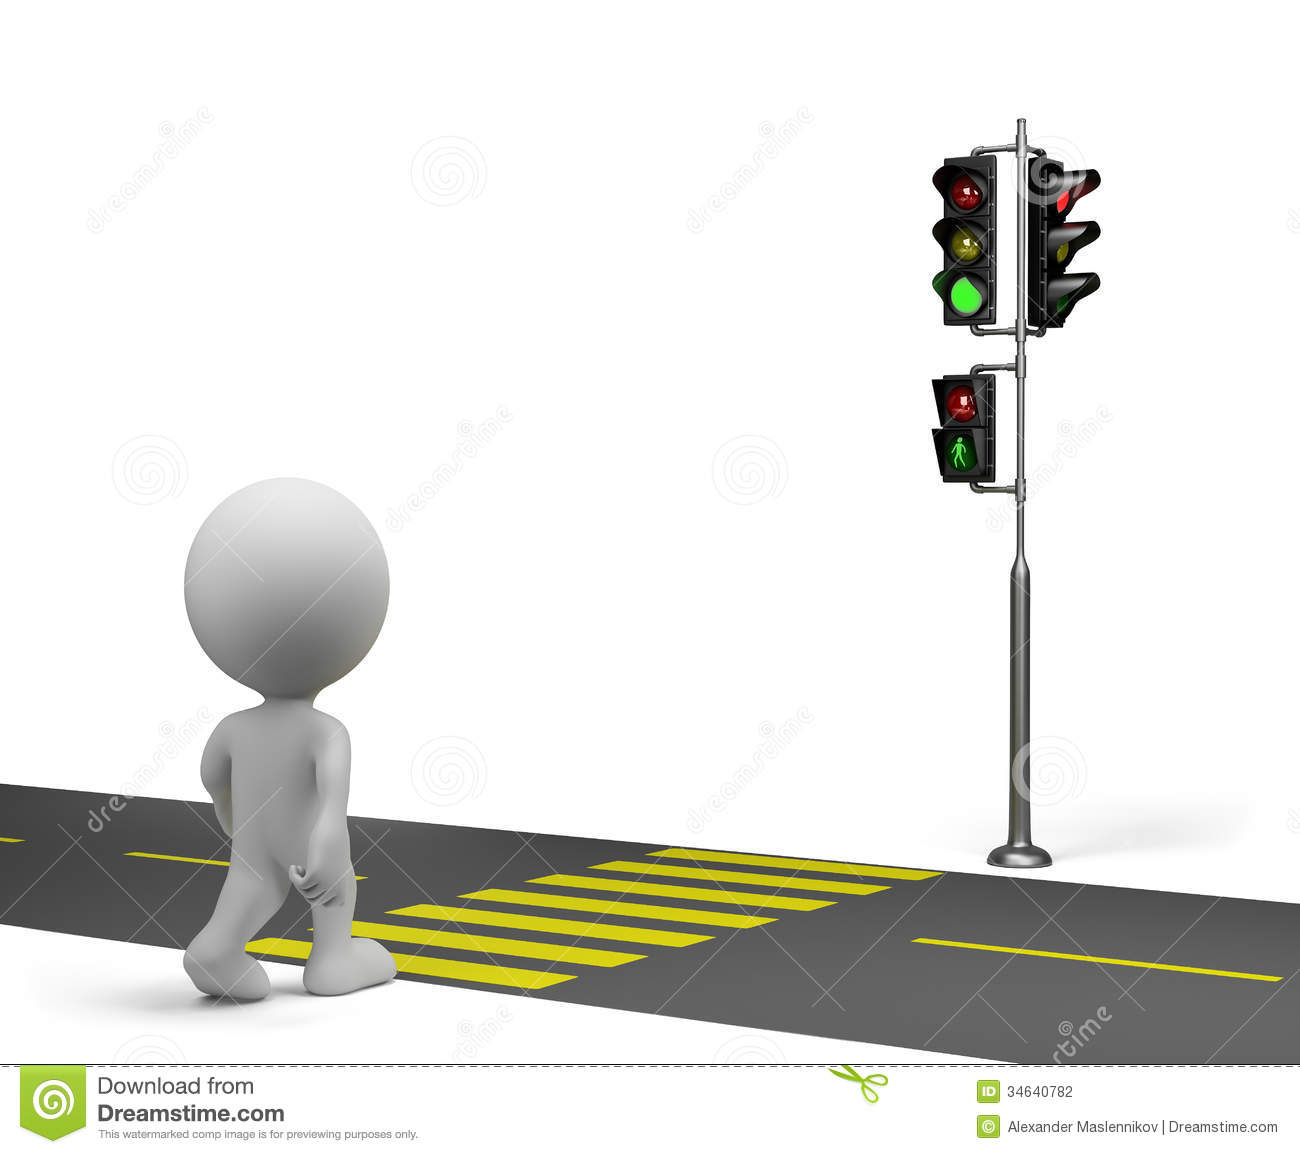 The Road On The Green Traffic Light  3d Image  White Background